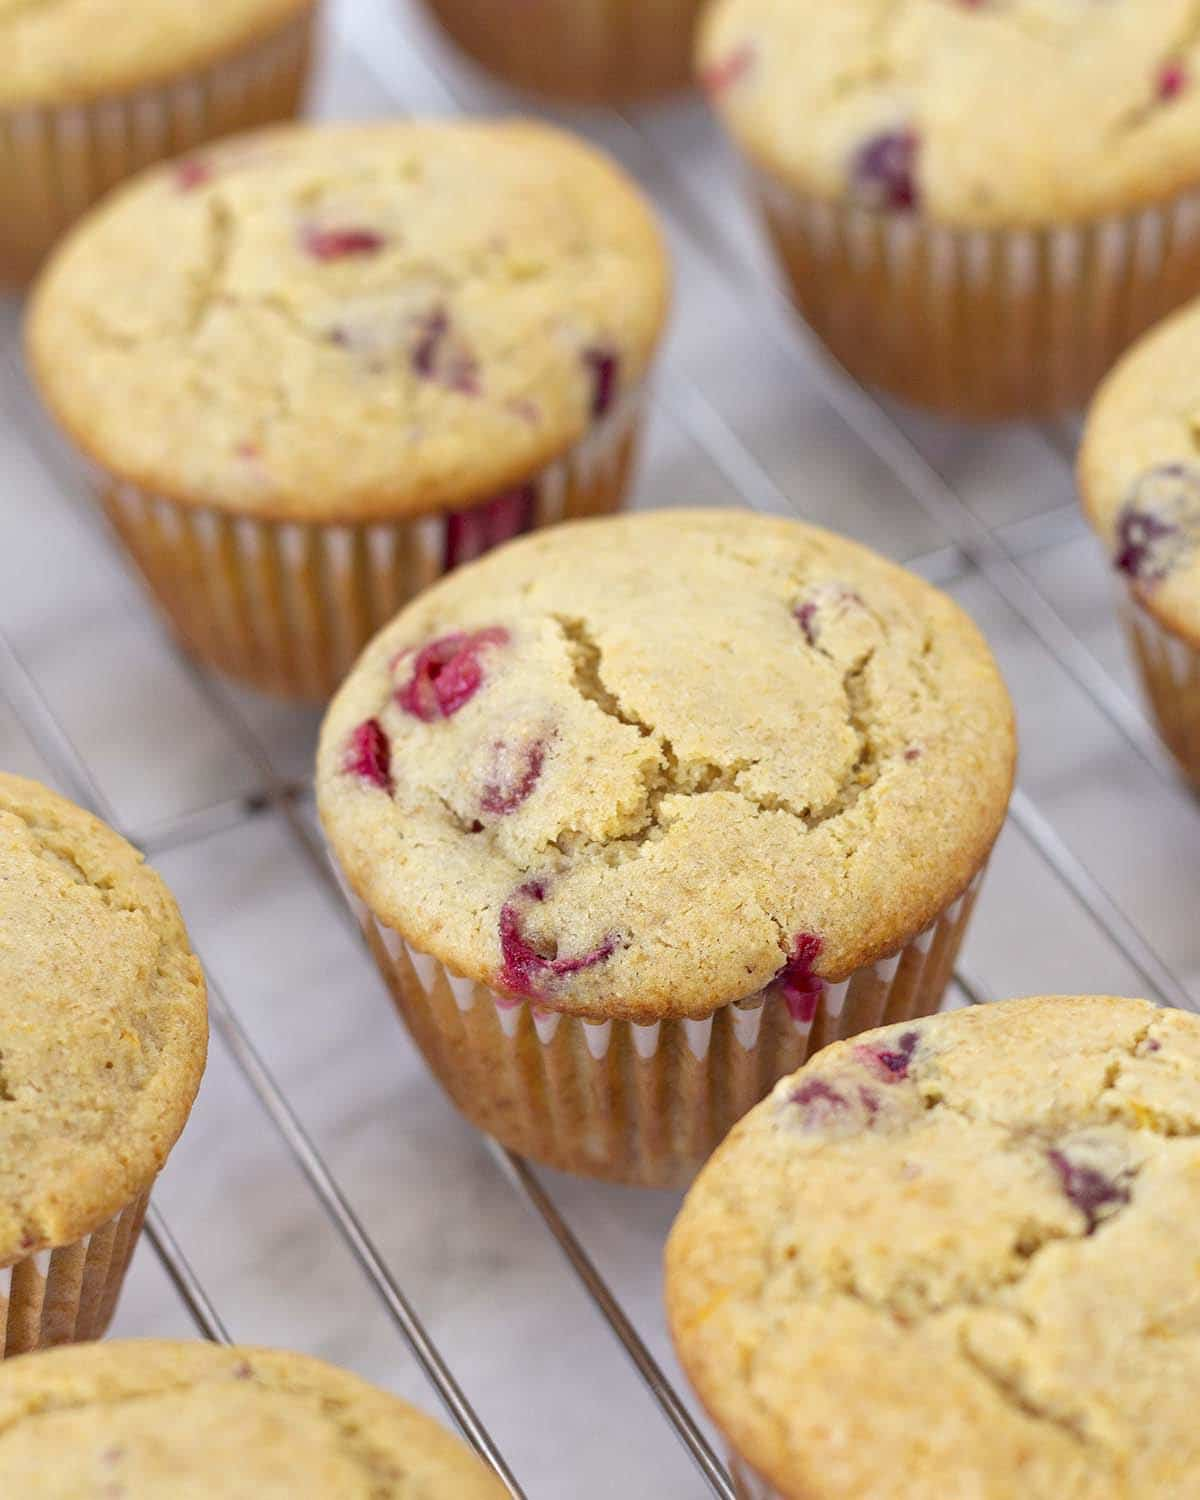 Several fresh baked dairy free orange cranberry muffins on a cooling rack.